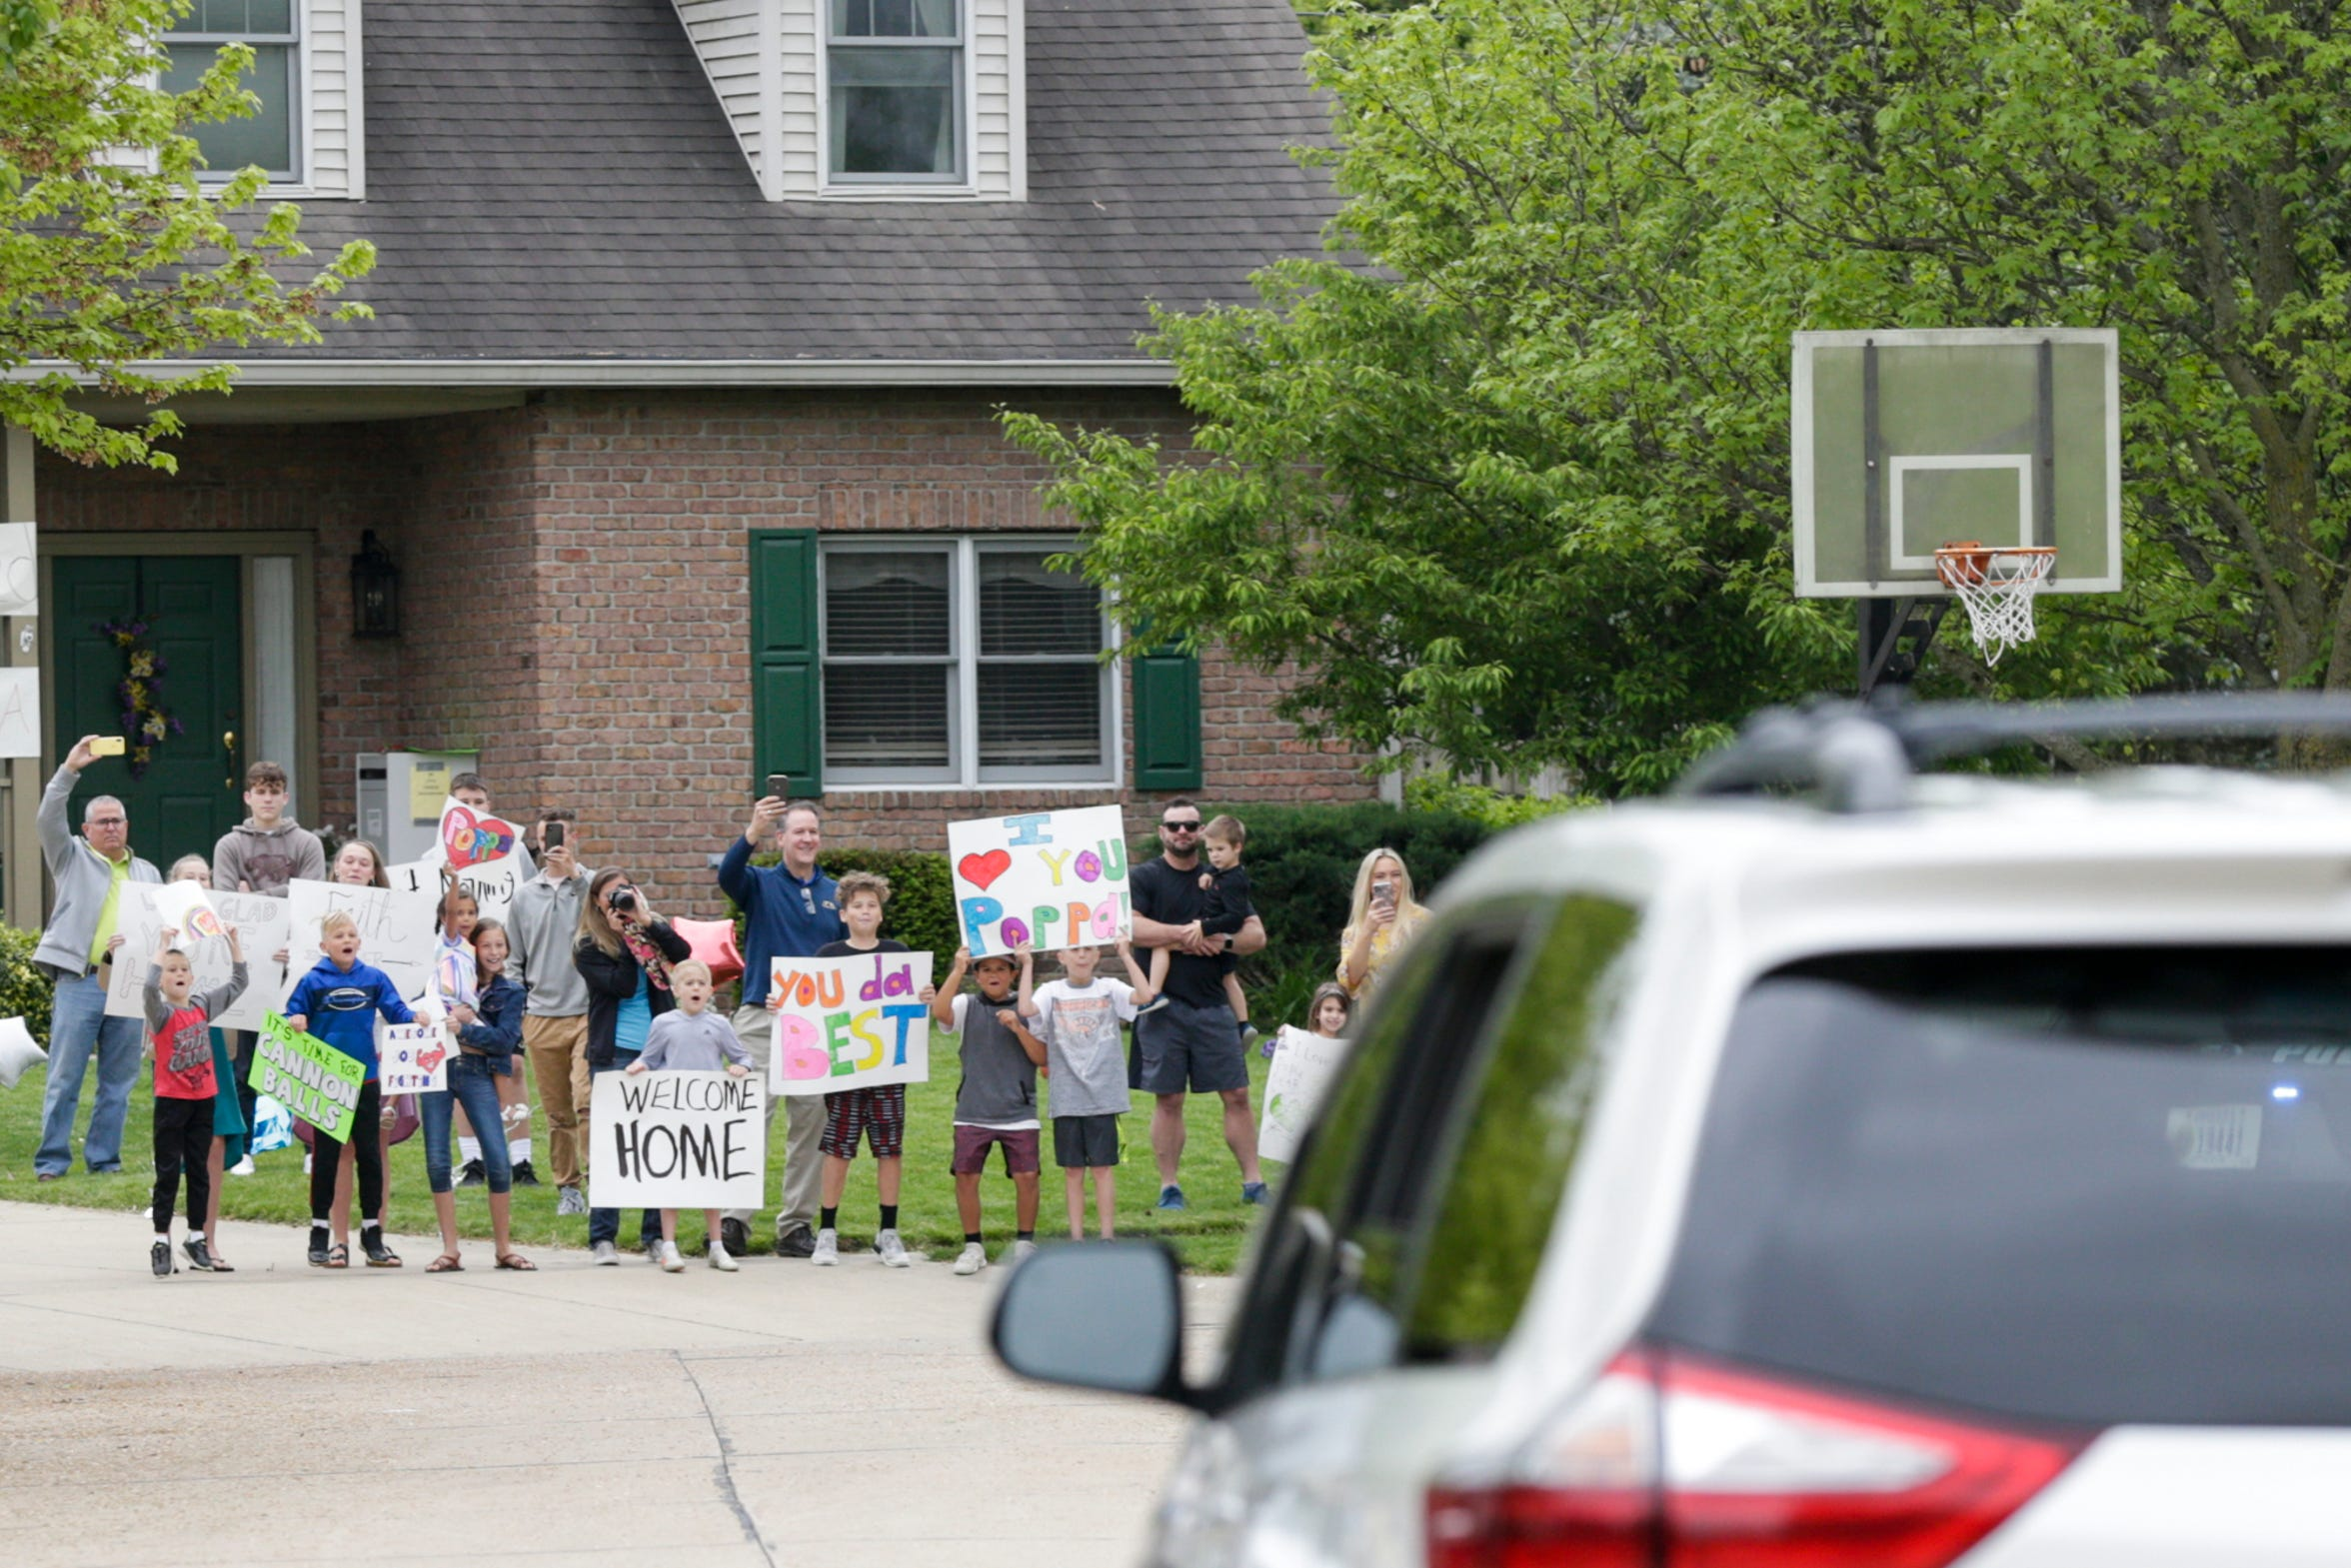 Family members wait outside Rob and Carol Kochon's home as they are welcomed back after months away, Thursday, May 21, 2020 in West Lafayette. Rob Kochon spent 50 days in a Florida hospital, 26 on a ventilator, after contracting COVID-19.